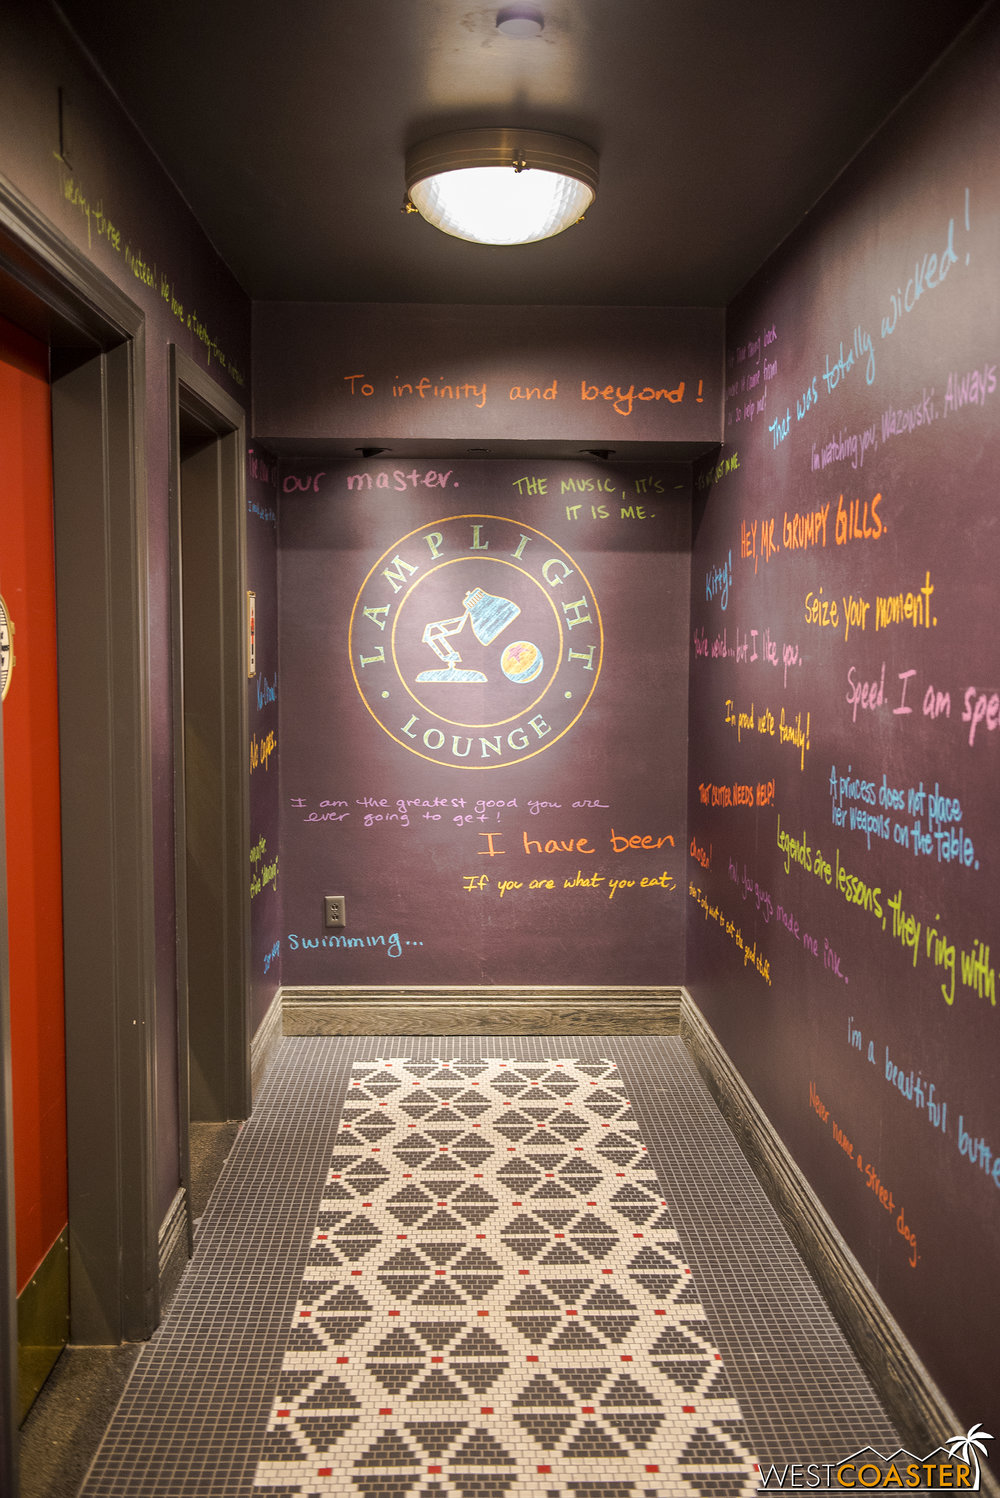 I kind of love this hallway to the restrooms.  Pixar quotes everywhere.  A lovely way to spruce up an otherwise boring passageway.